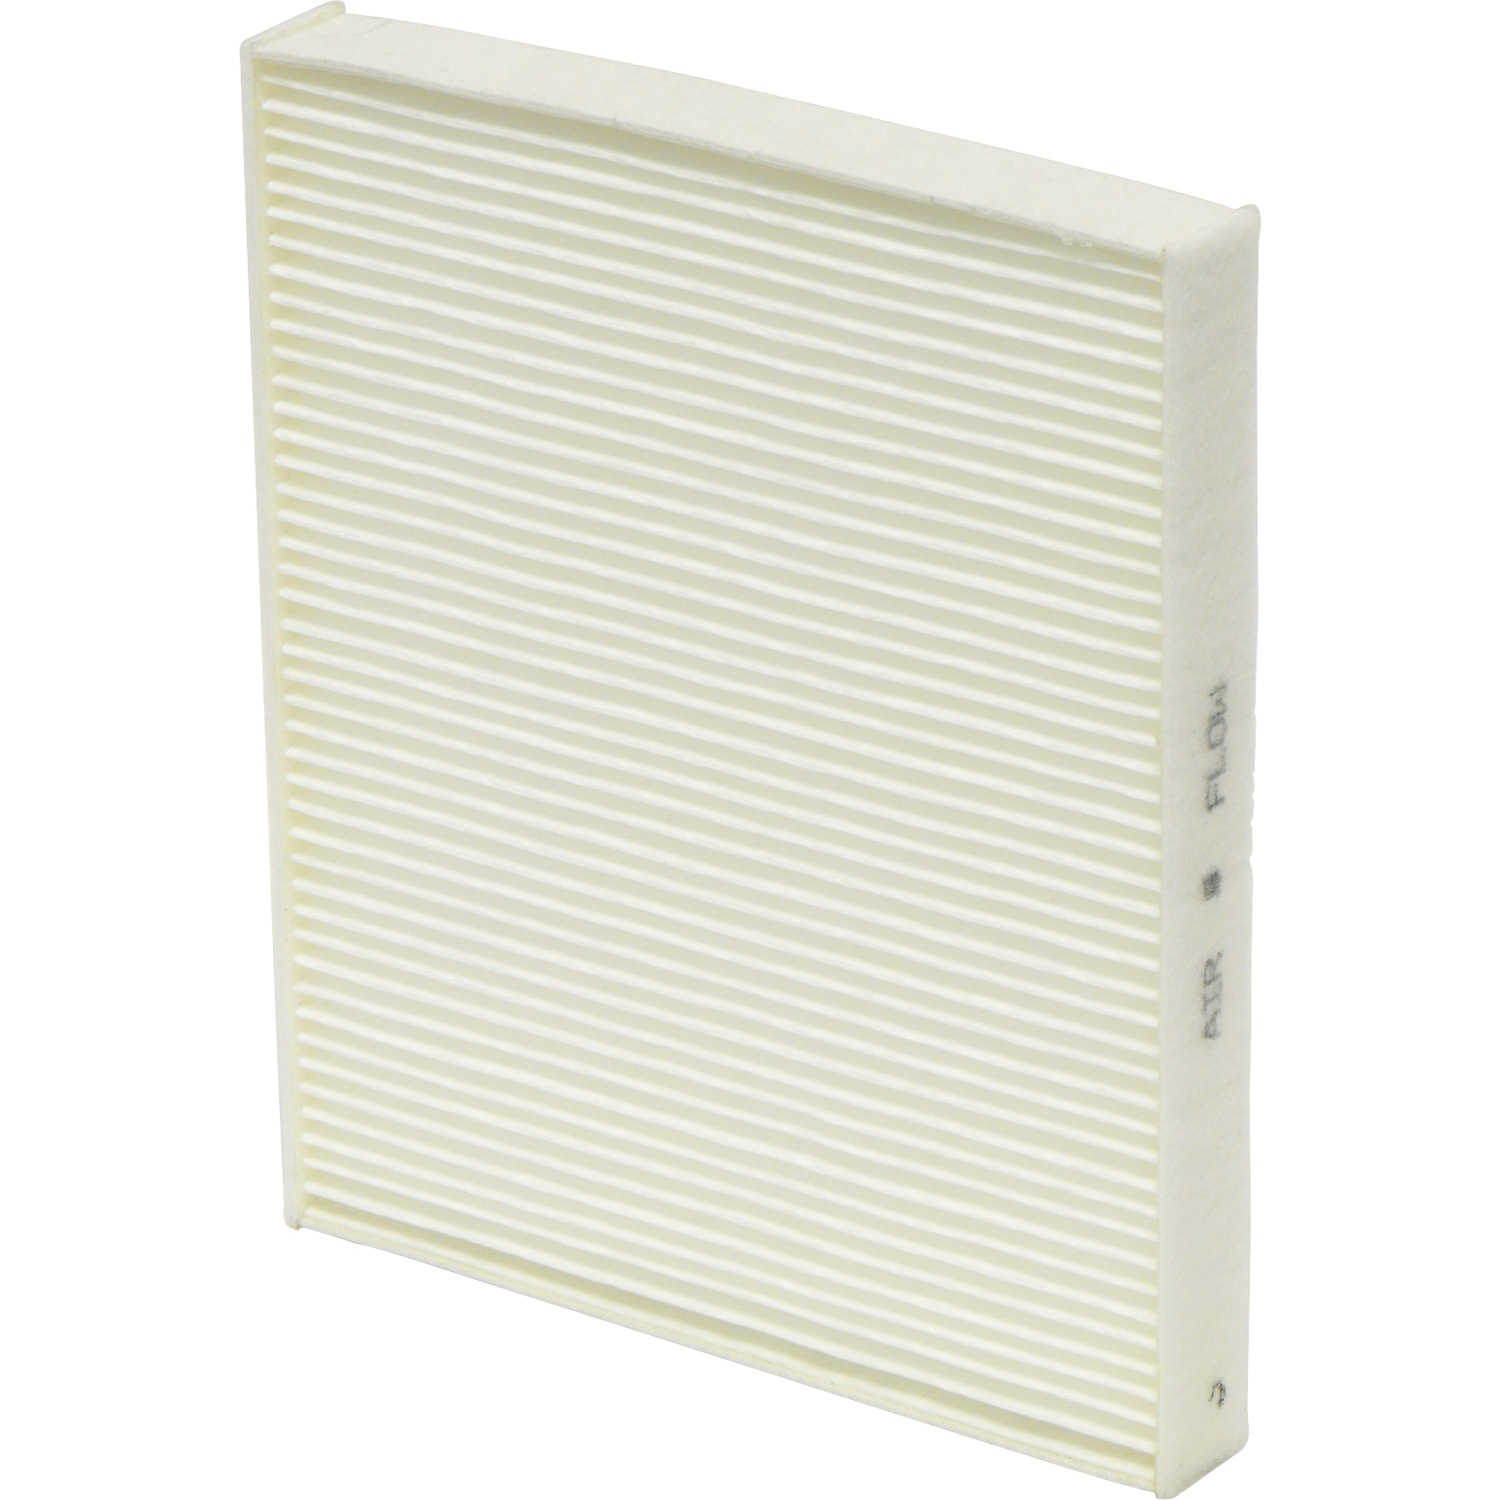 Particulate Cabin Air Filter FI 1235C